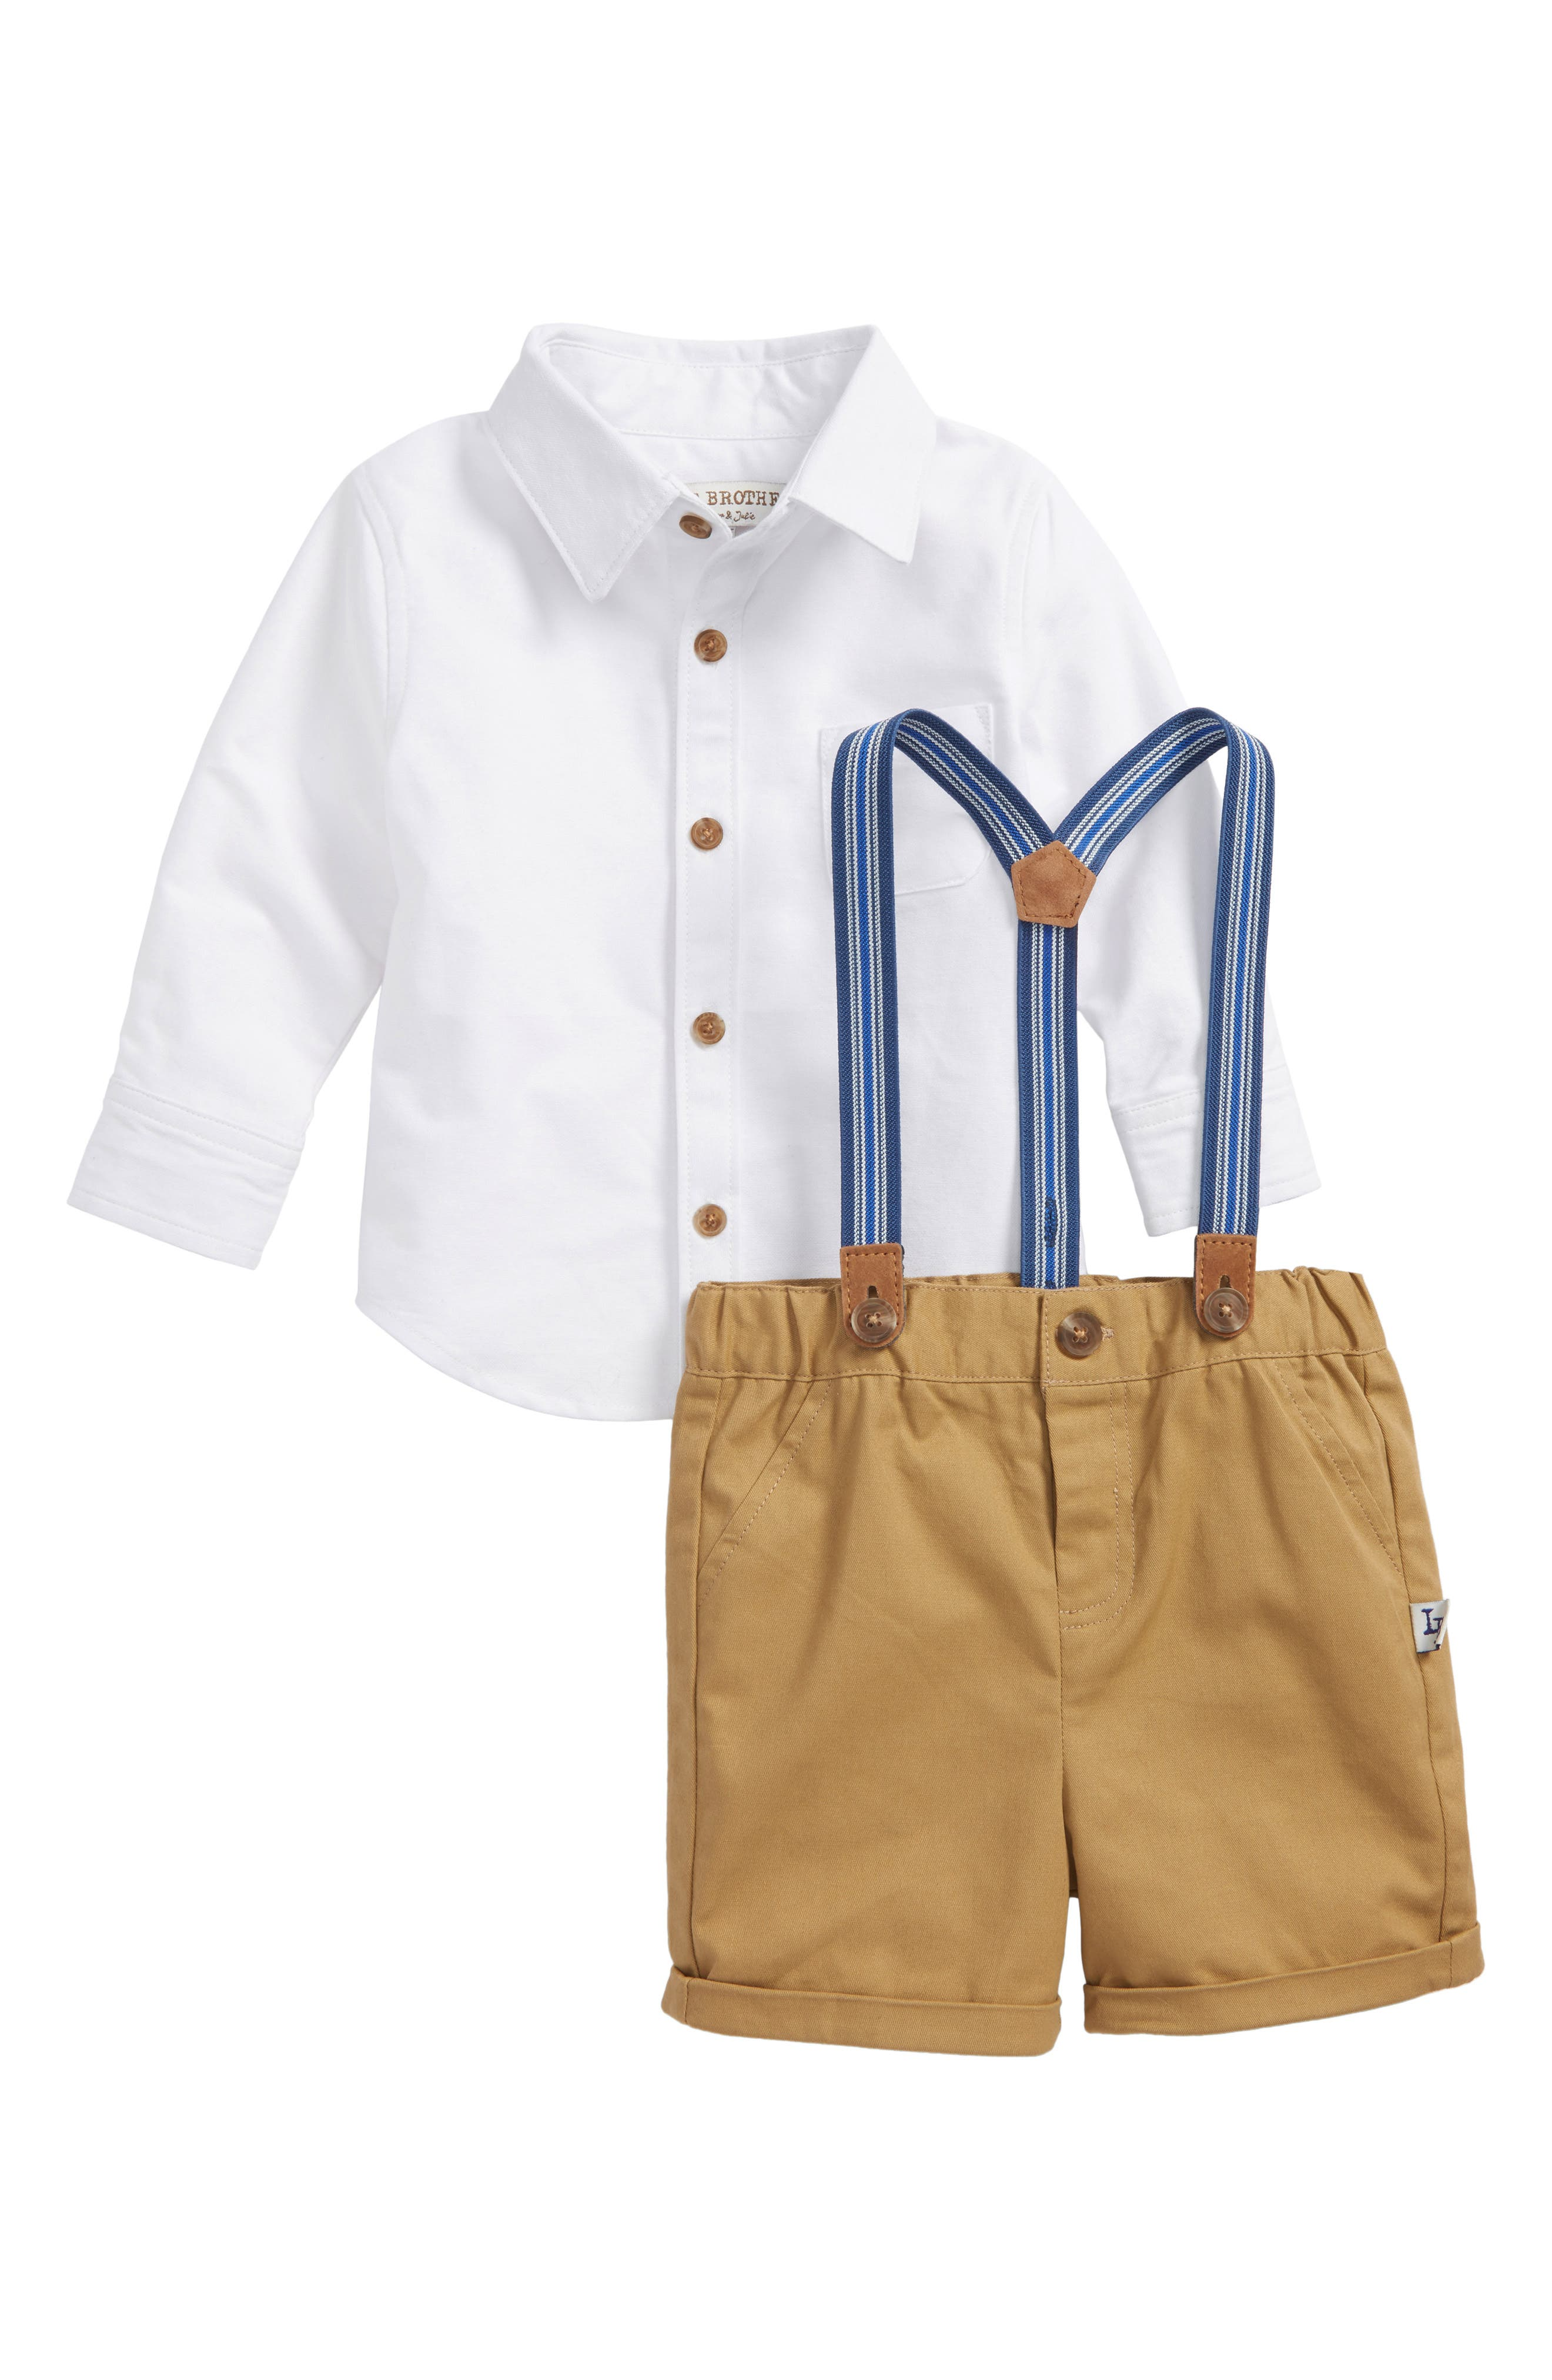 Alternate Image 1 Selected - Little Brother by Pippa & Julie Shirt & Suspender Shorts Set (Baby Boys)